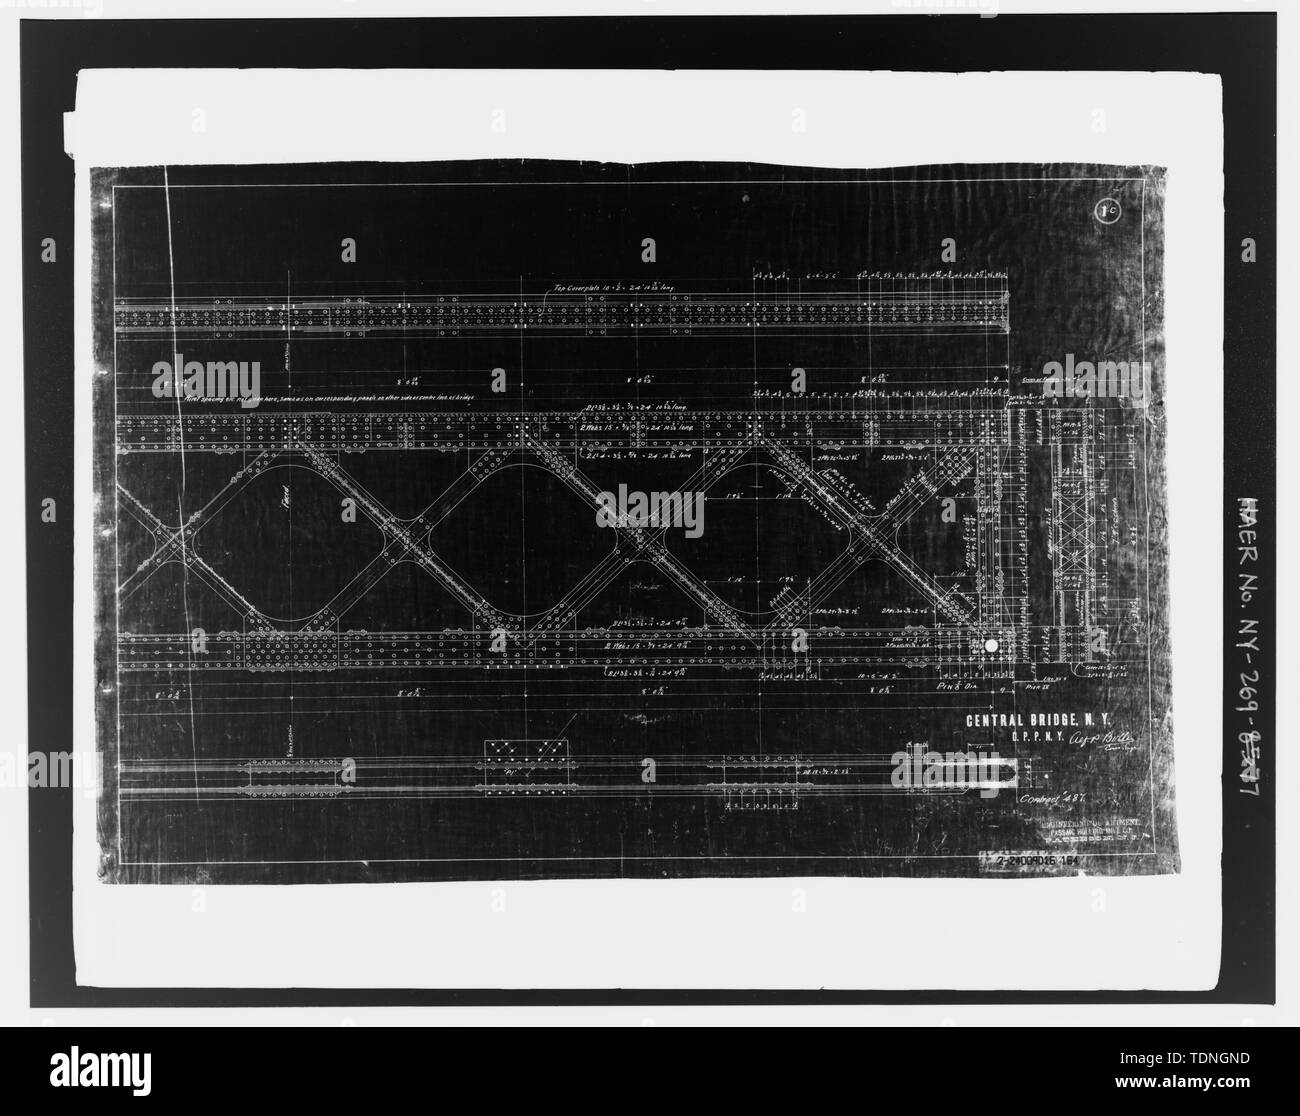 Photocopy of original structural shop drawing, Passaic Rolling Mill Company, 1892-1893, (original in possession of New York City Department of Transportation), lattice girder elevation and details - girder G1 - Macombs Dam Bridge, Spanning Harlem River Between 155th Street Viaduct, Jerome Avenue, and East 162nd Street, Bronx, Bronx County, NY - Stock Image